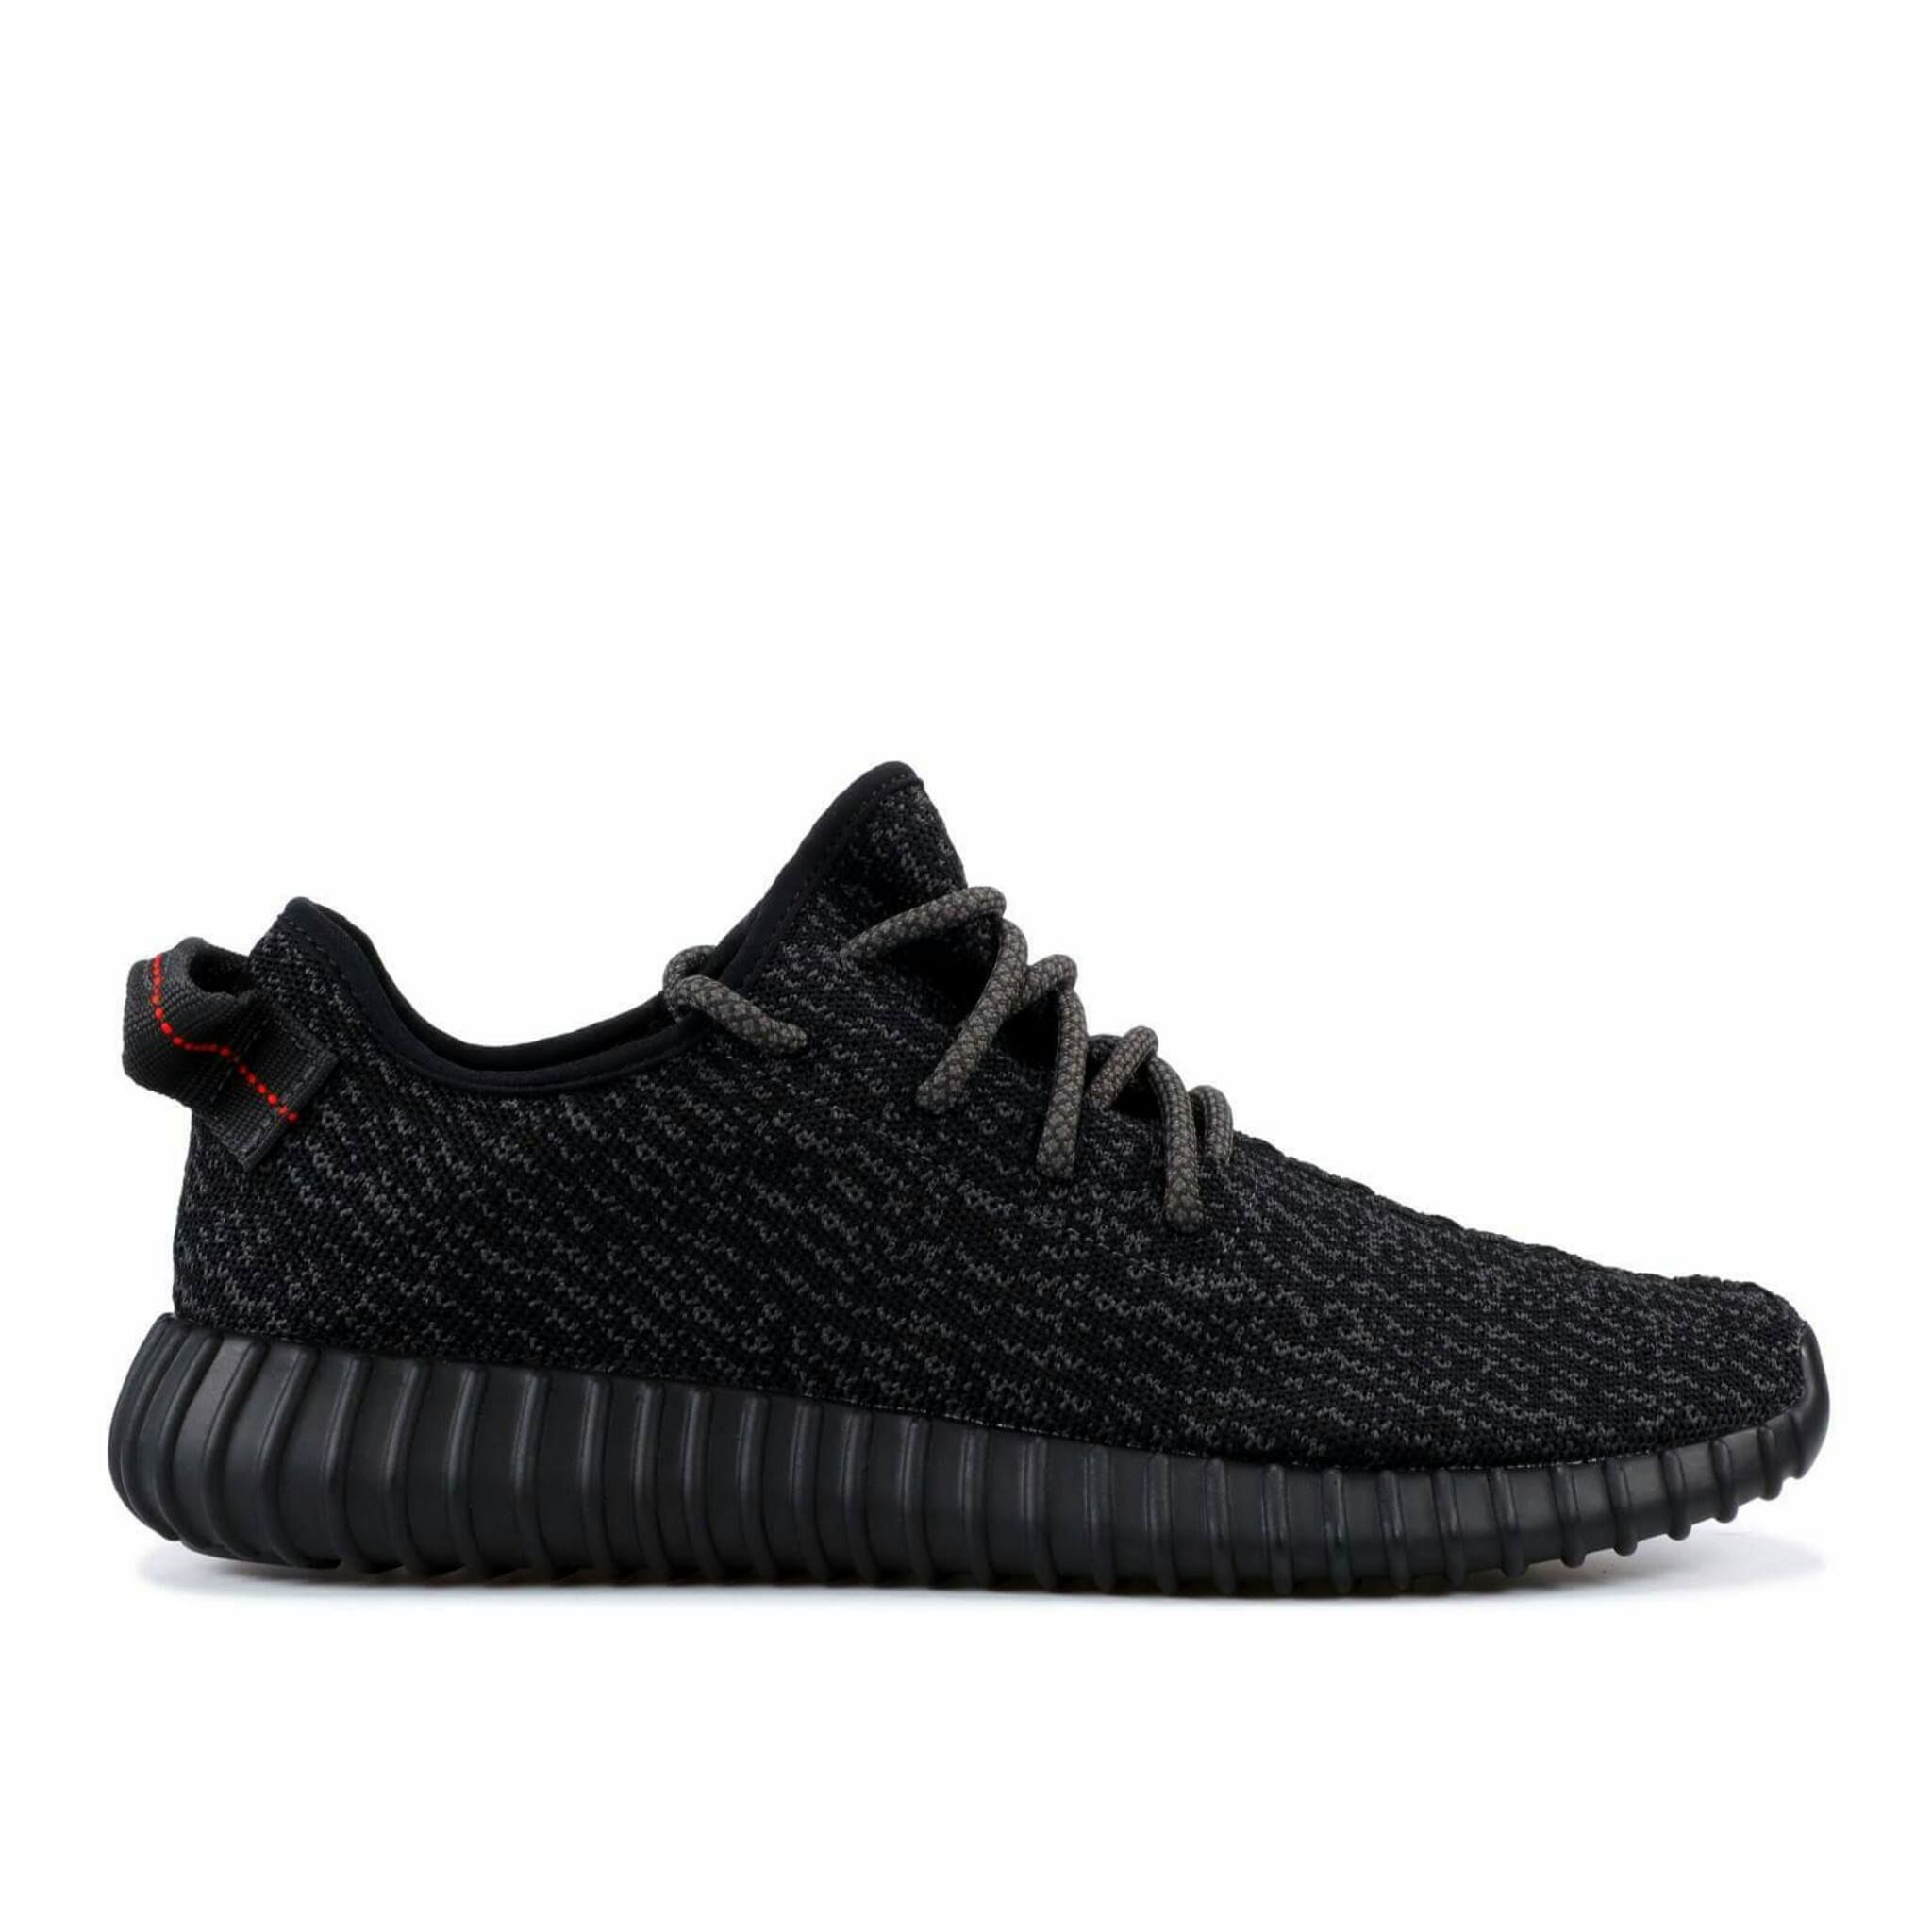 Cheap Adidas Yeezy adidas Yeezy BOOST 350 BB5350 Chaussures